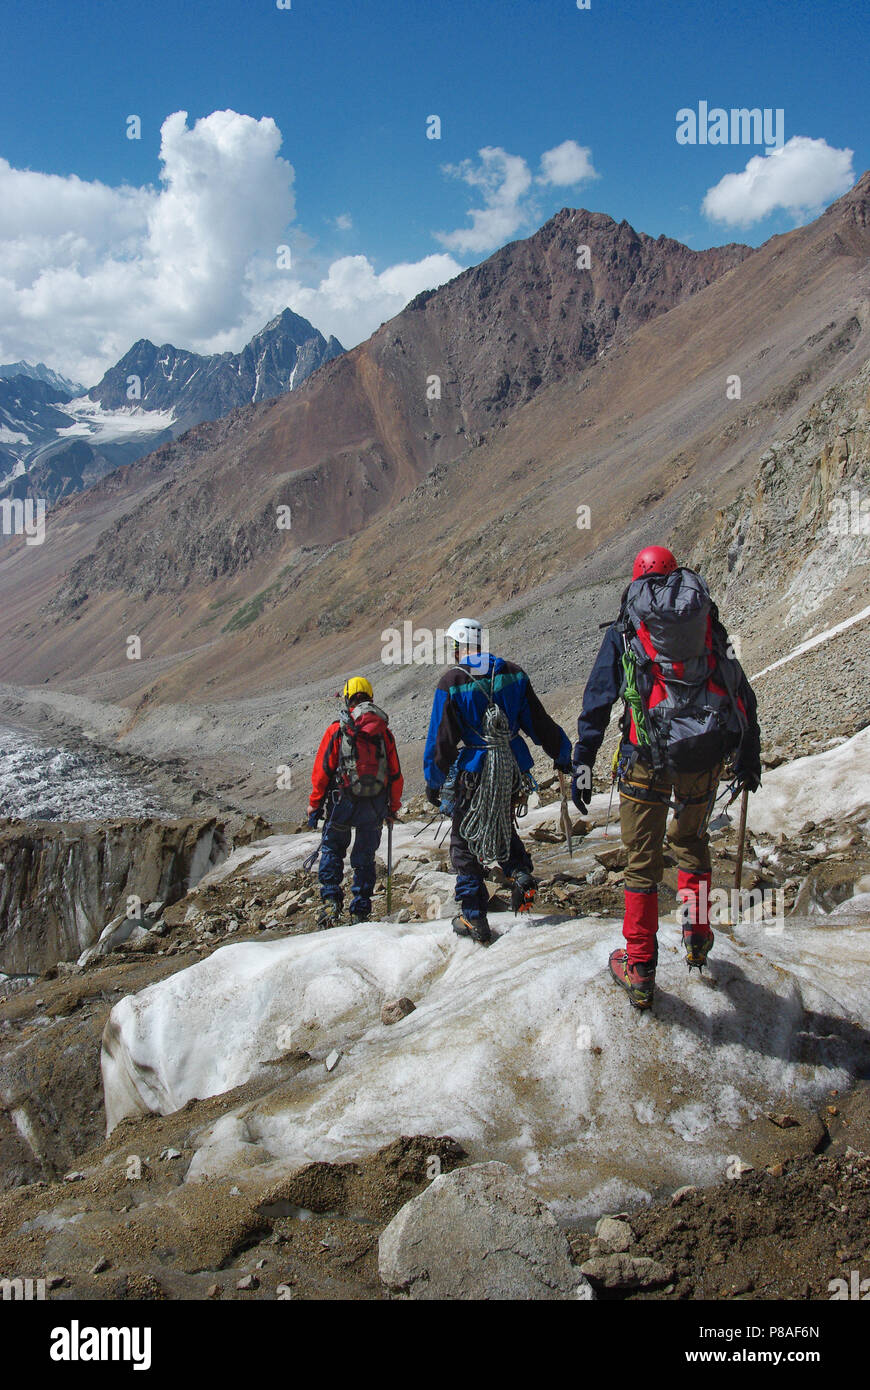 travelers hiking in snowy mountains, Russian Federation, Caucasus, July 2012 - Stock Image